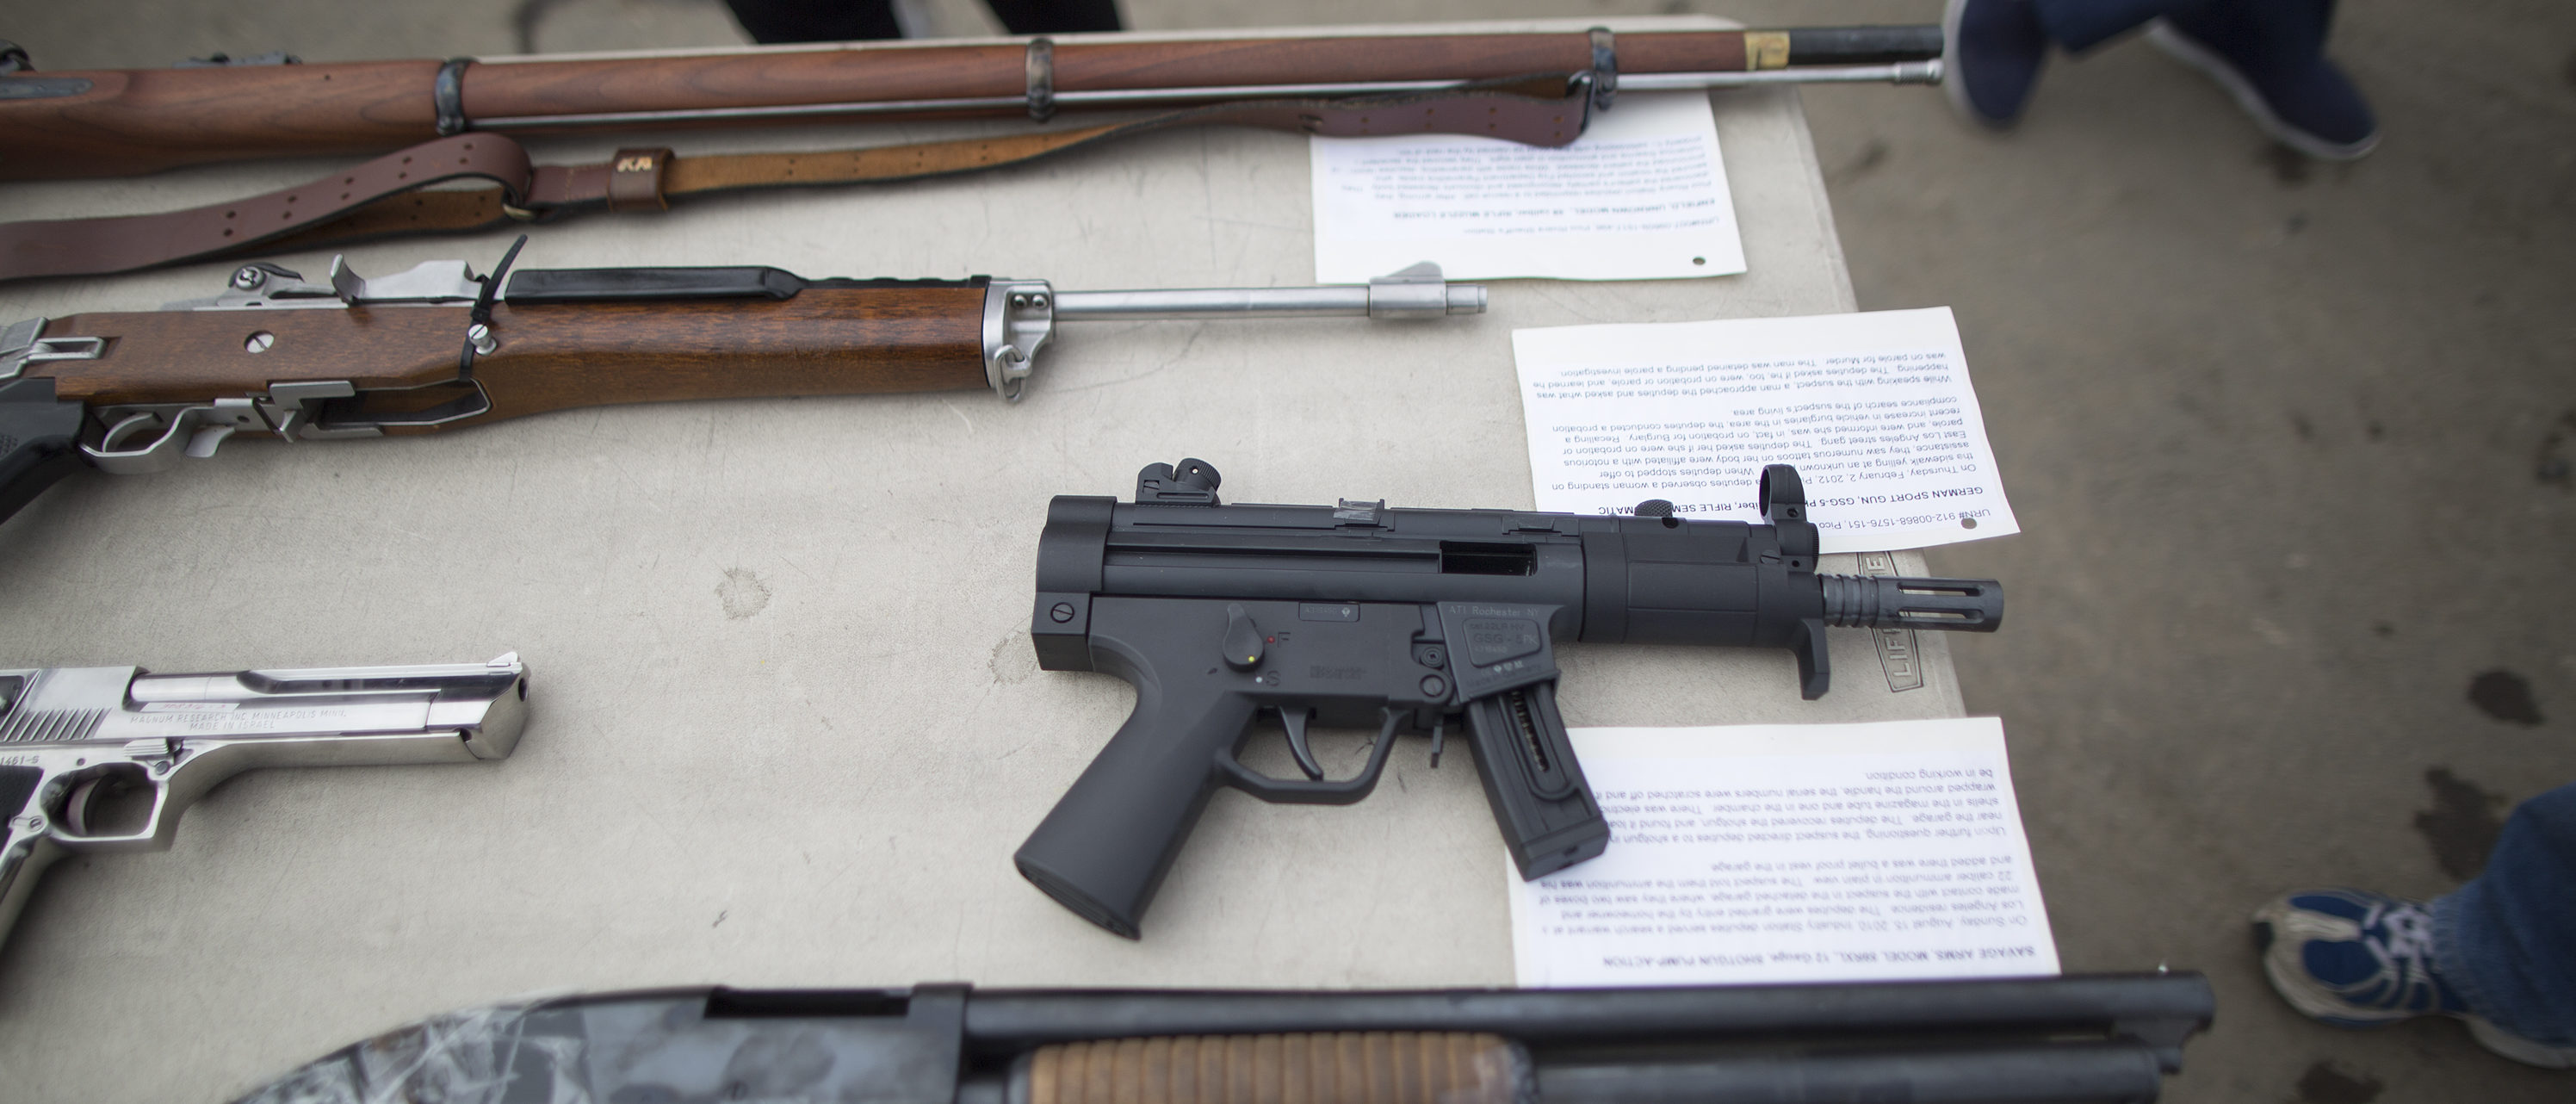 RANCHO CUCAMONGA, CA - JUNE 26: Confiscated guns are displayed prior to the destruction of approximately 3,400 guns and other weapons at the Los Angeles County Sheriffs' 22nd annual gun melt at Gerdau Steel Mill on July 6, 2015 in Rancho Cucamonga, California. The weapons, confiscated in various law enforcement operations, will be recycled in the form of steel rebar to be used in construction. California law requires the destruction of the confiscated weapons. (Photo by David McNew/Getty Images)